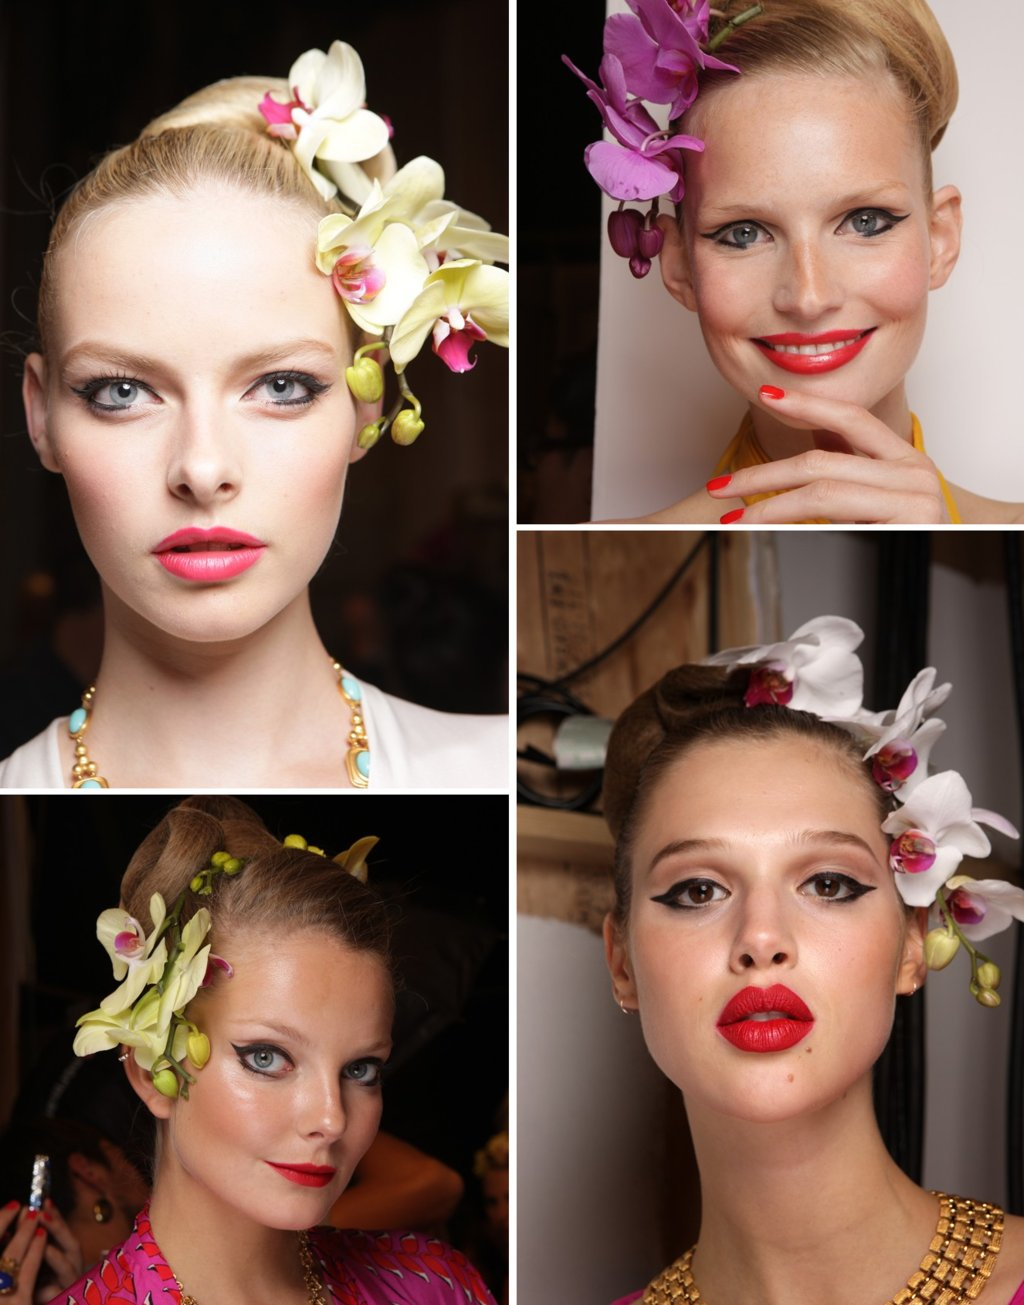 Bridal-beauty-inspiration-wedding-hair-makeup-off-the-catwalk-issa-london.full